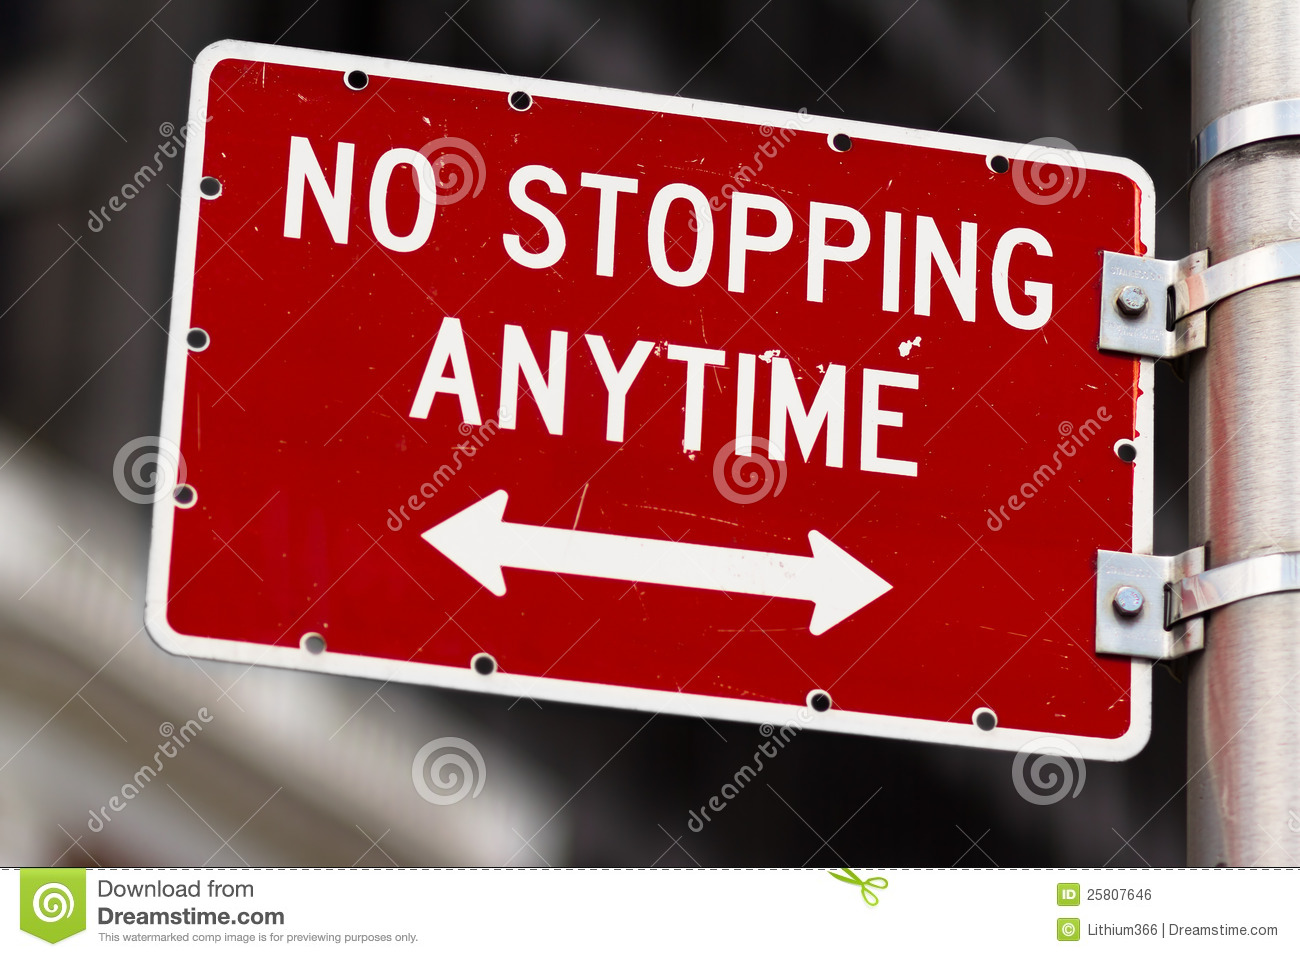 No Stopping Anytime Road Sign Royalty Free Stock Image.